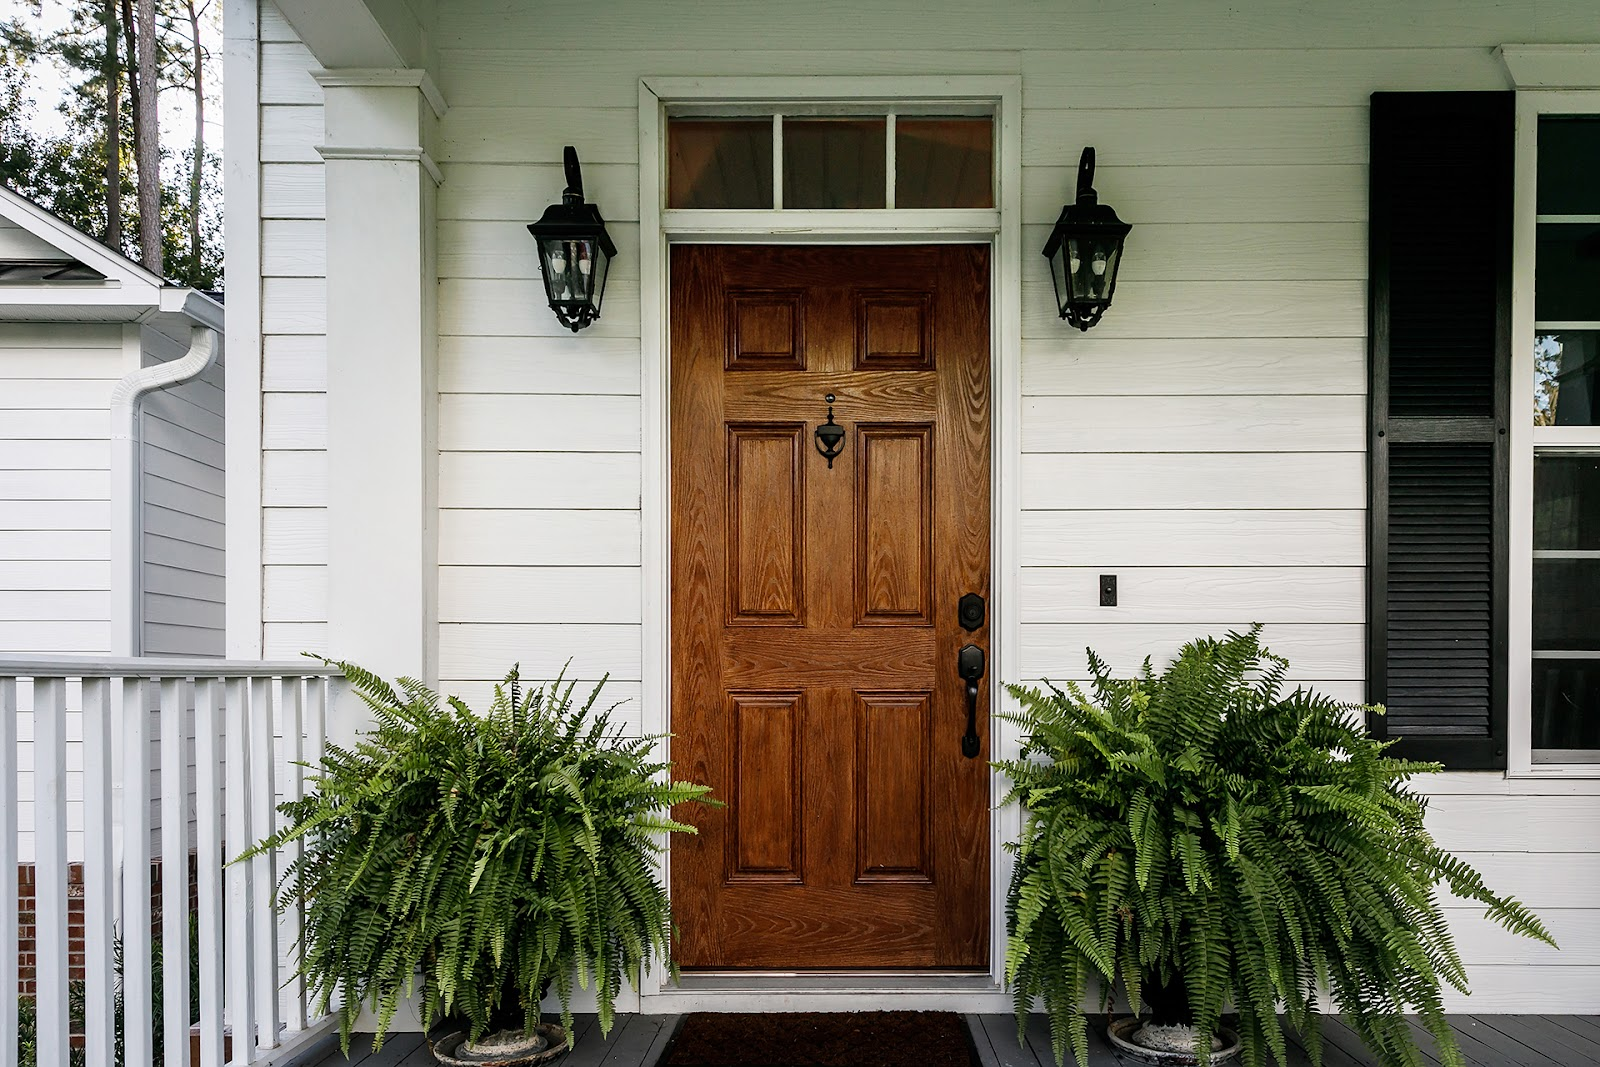 Home Exterior with Plants